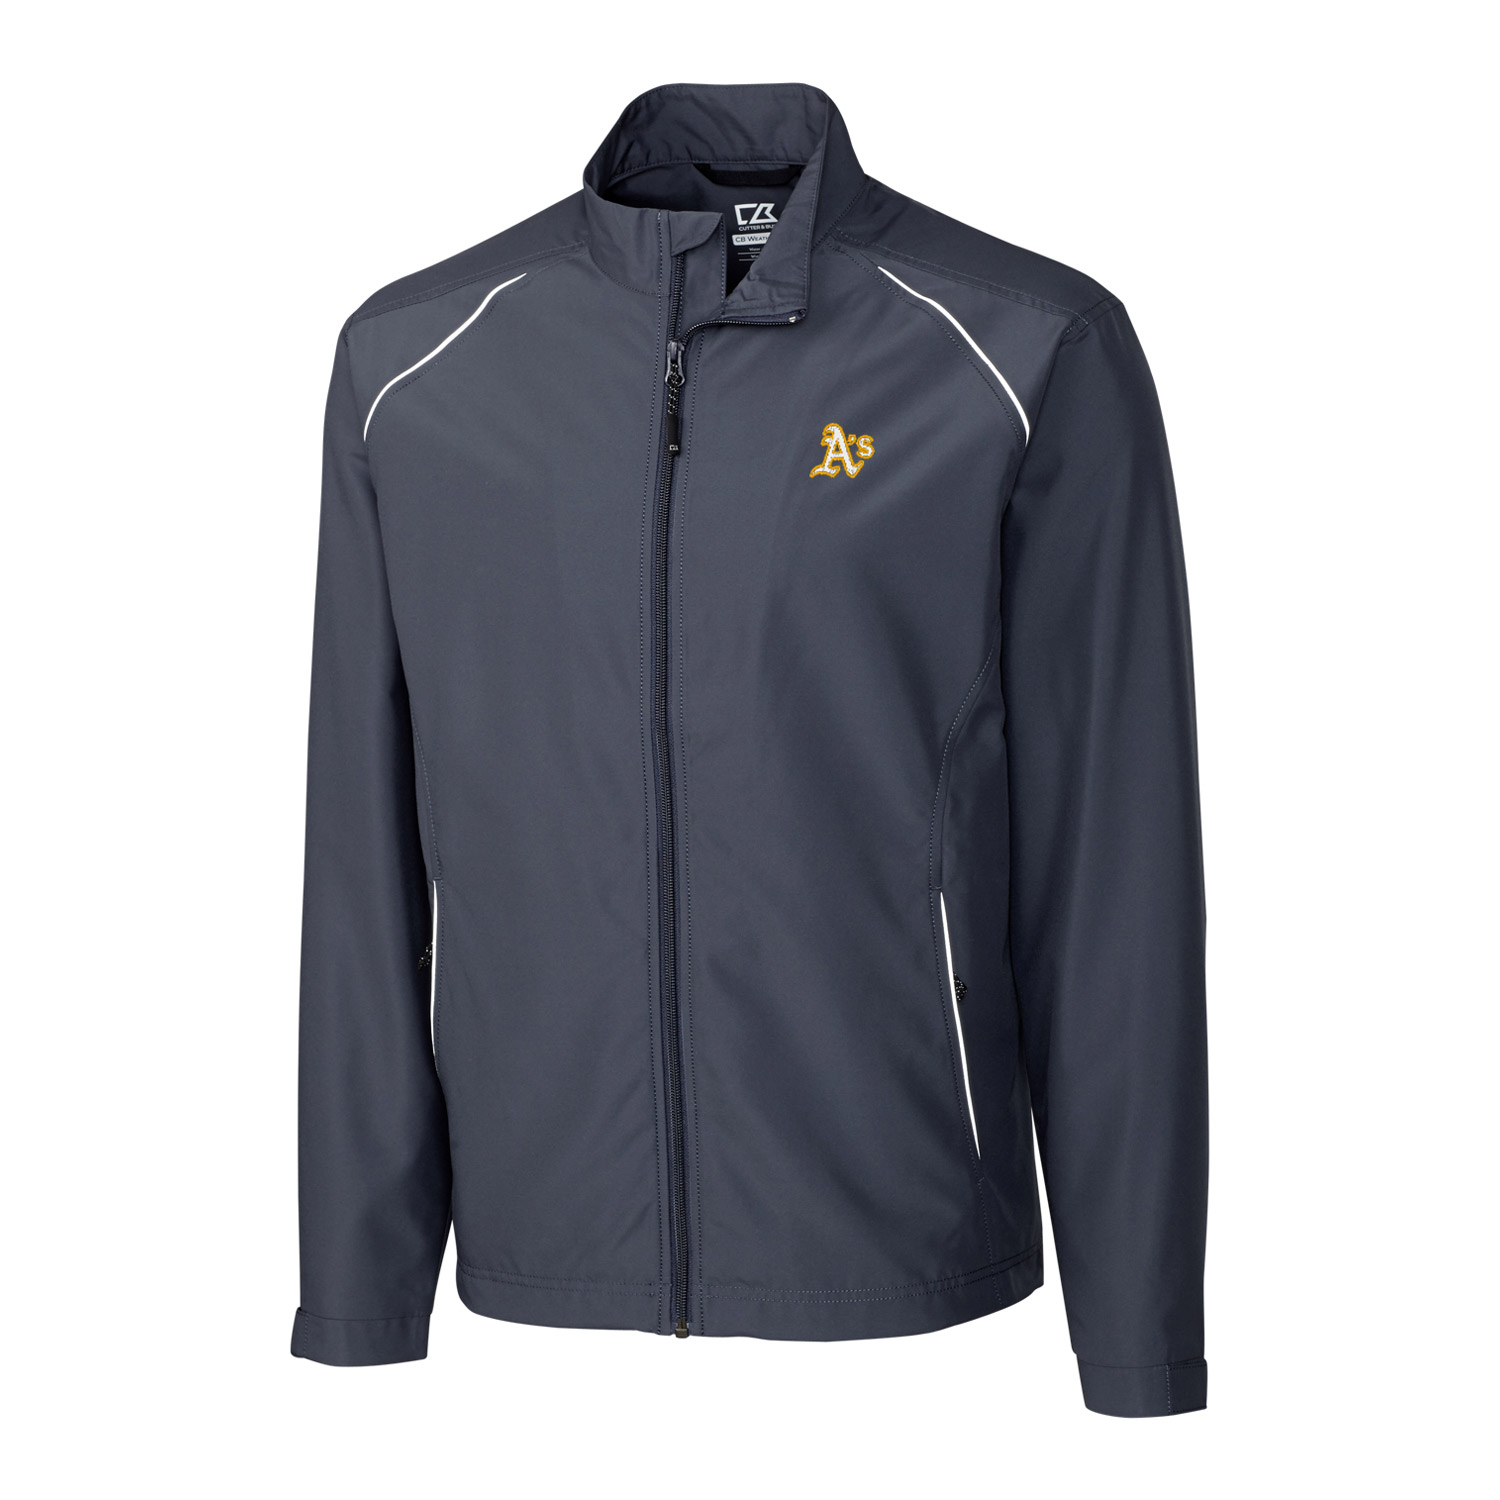 Oakland Athletics Cutter & Buck Big & Tall WeatherTec Beacon Full Zip Jacket - Charcoal